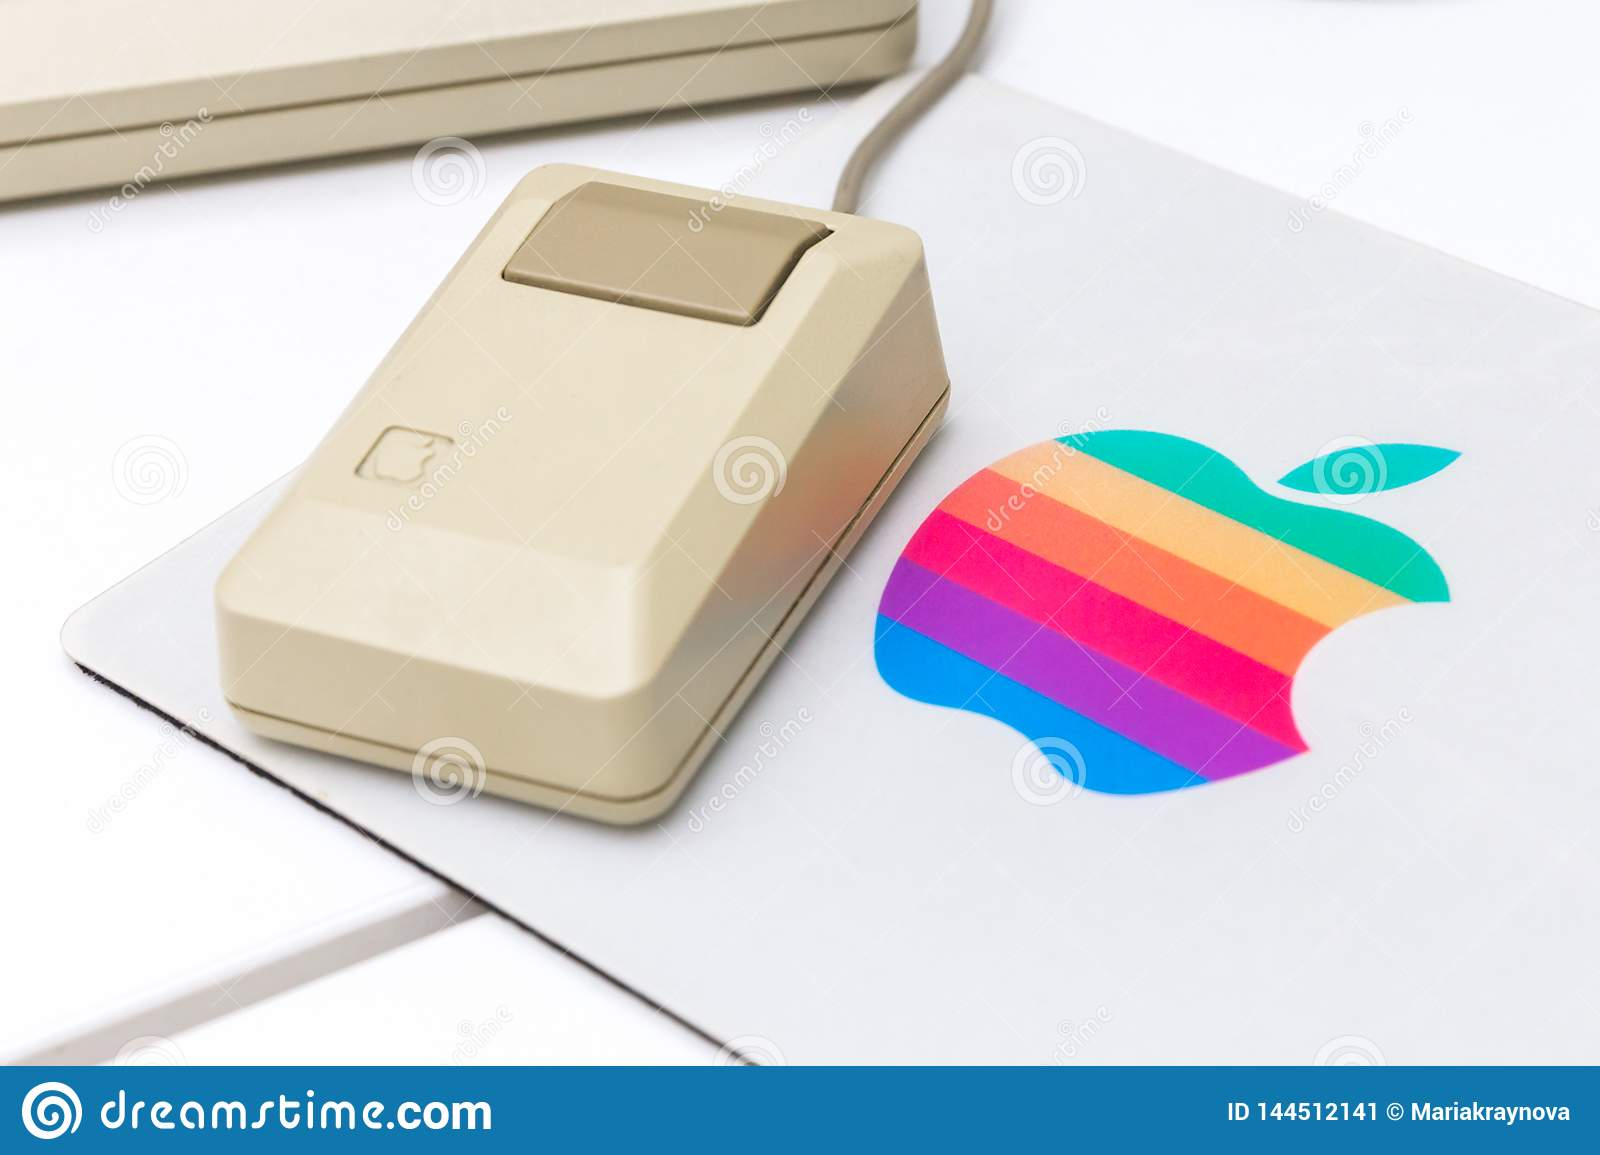 MOSCOW, RUSSIA - JUNE 11, 2018: Old original Apple Mac mouse in museum in Moscow, Russia